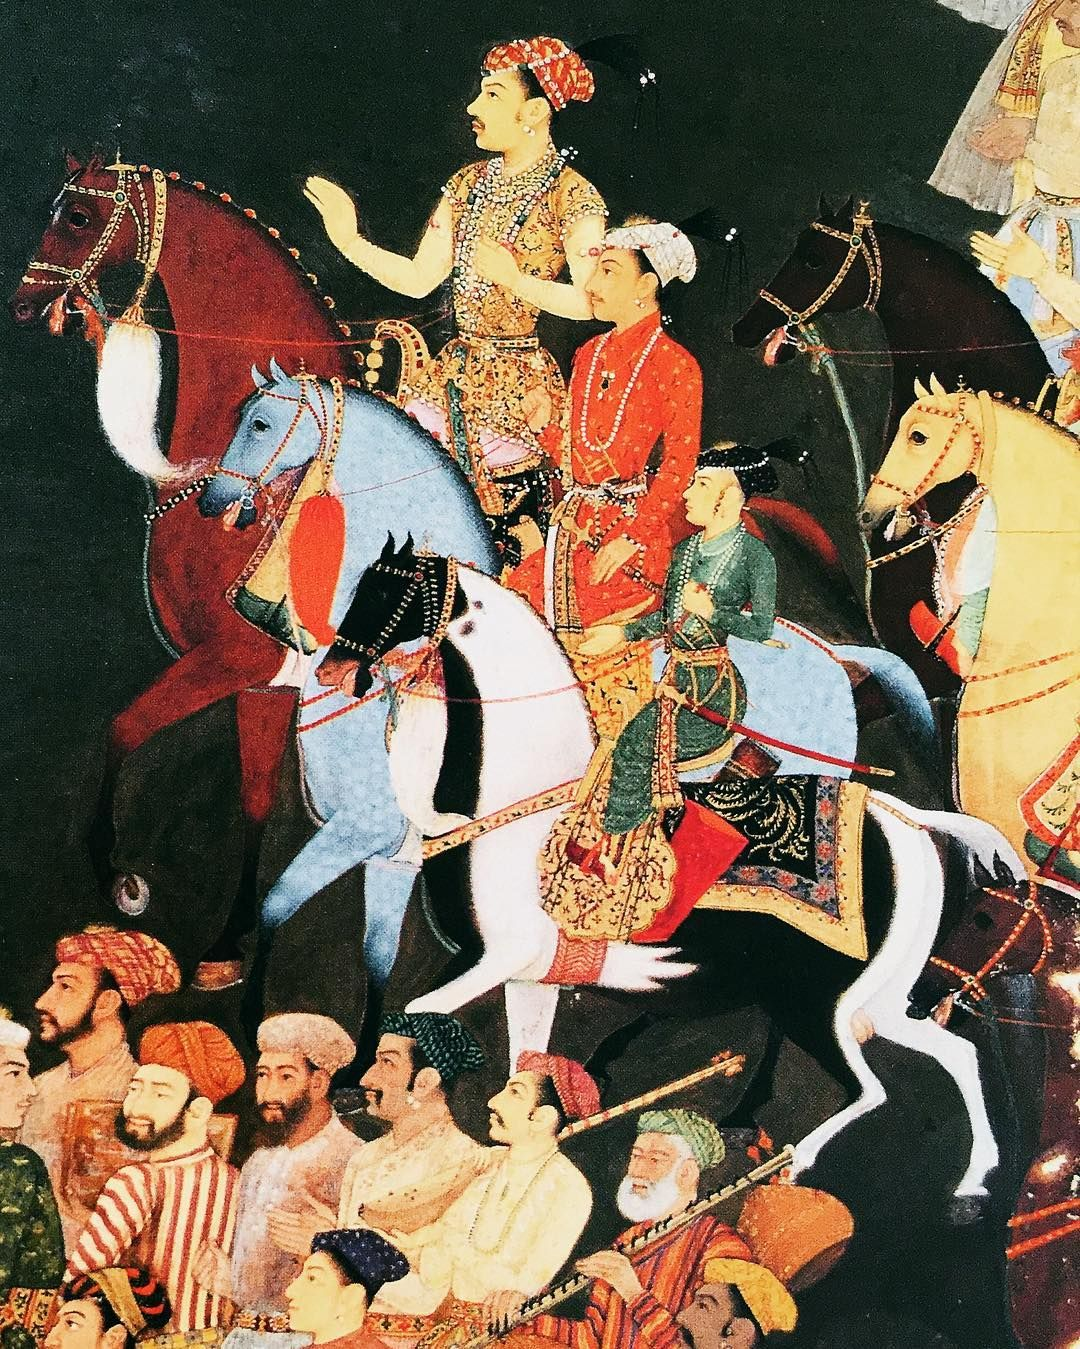 Theme for today (pumpkins were so yesterday)  #spicemama #melbournecup #horseracing #mughal #mughalart #beautiful #painting #inspo #livecolorfully #lifeisbeautiful #thehappynow #flashesofdelight #indian #art #design #inspiration